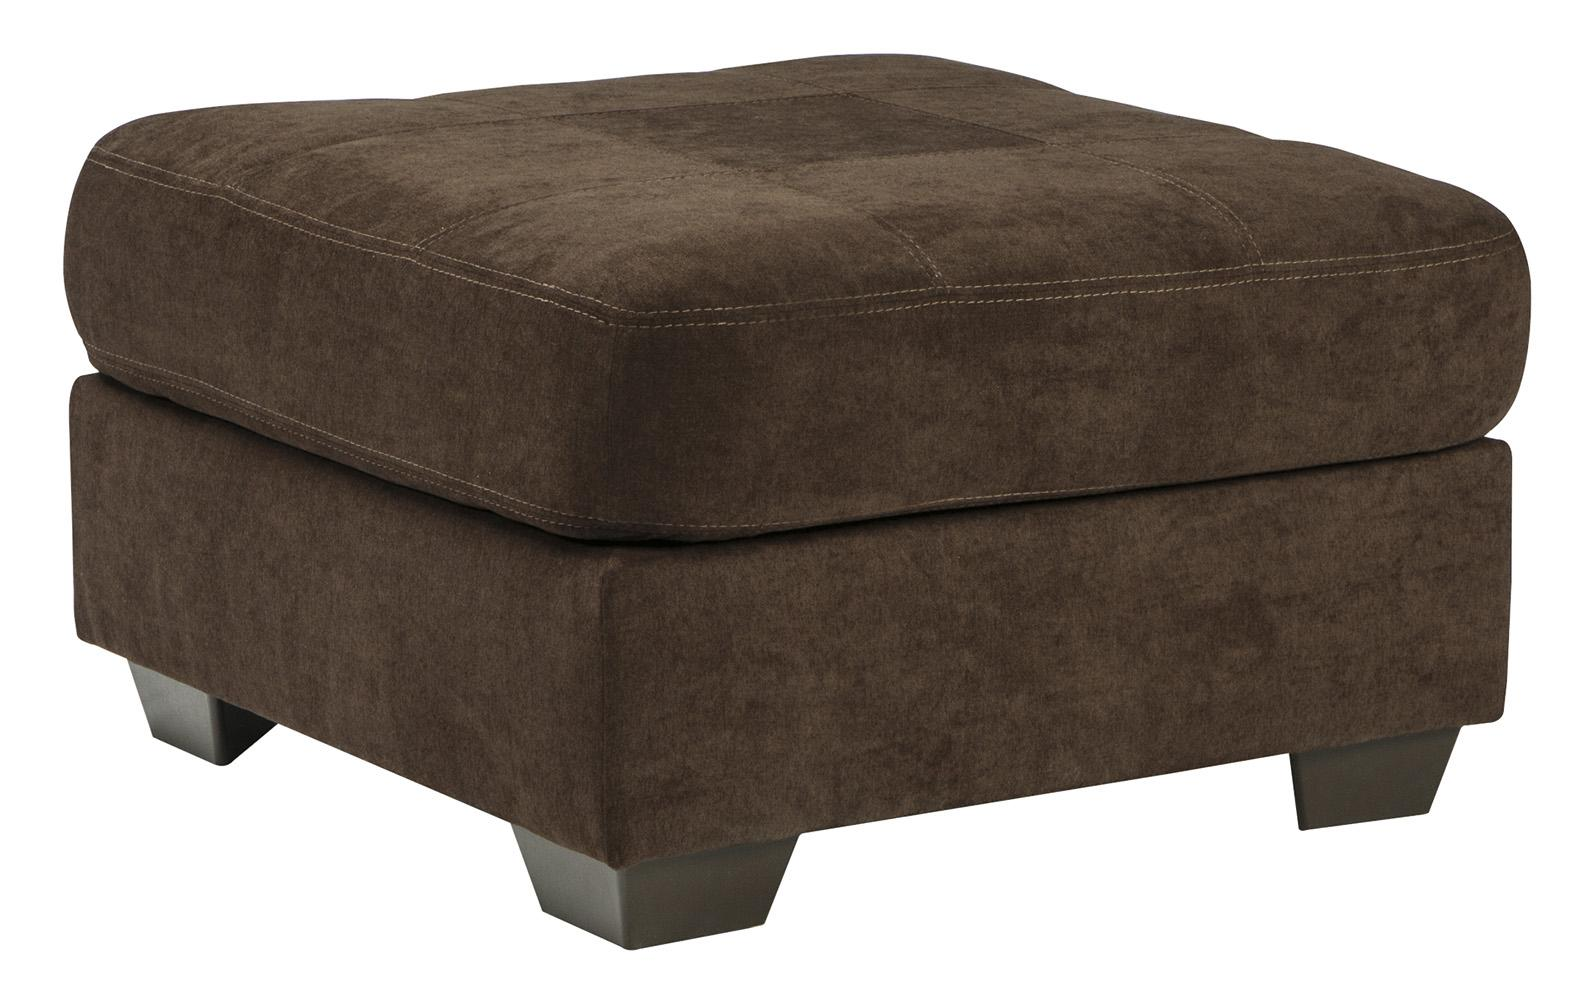 Benchcraft Delta City - Chocolate Oversized Accent Ottoman - Item Number: 1970208